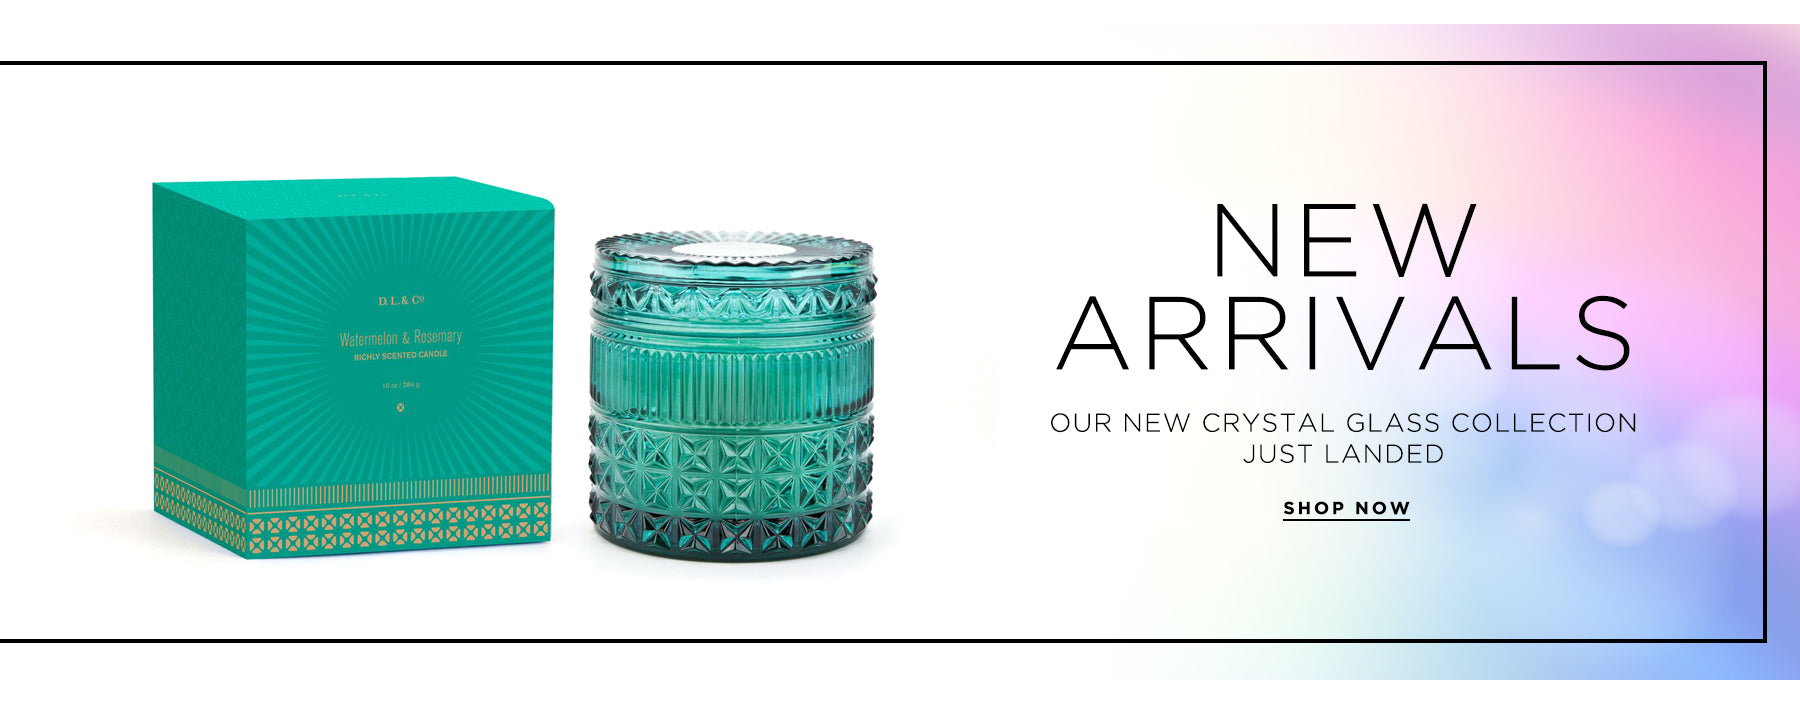 Spotlight on the new Crystal Glass collection